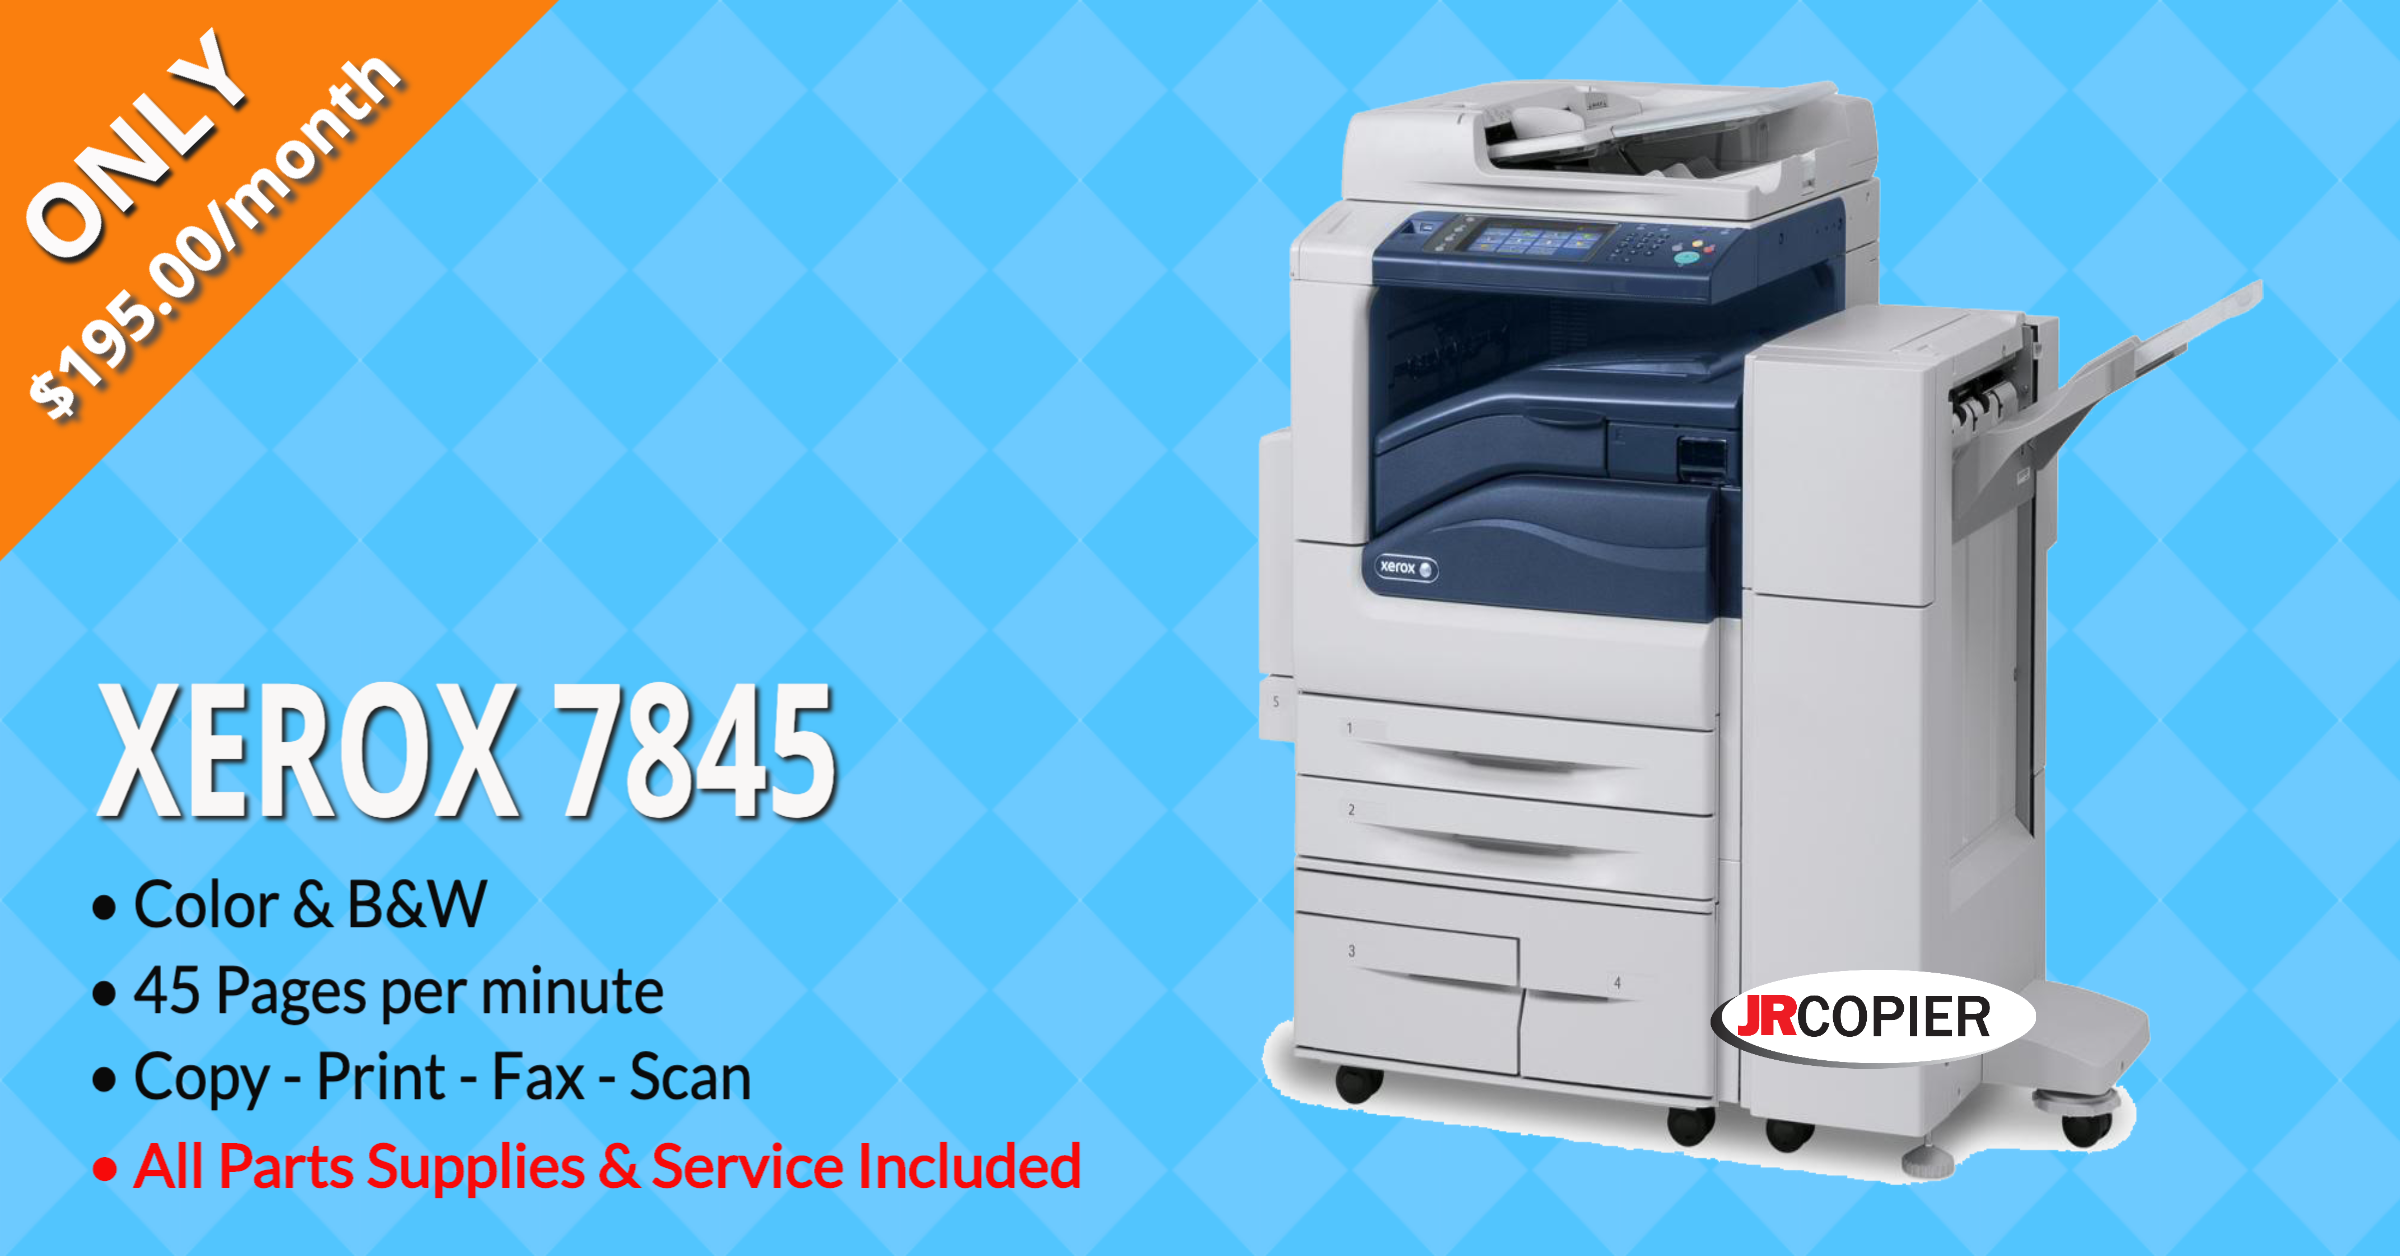 Multifunction Printer Sales 38017, 38027, 38125, 38139